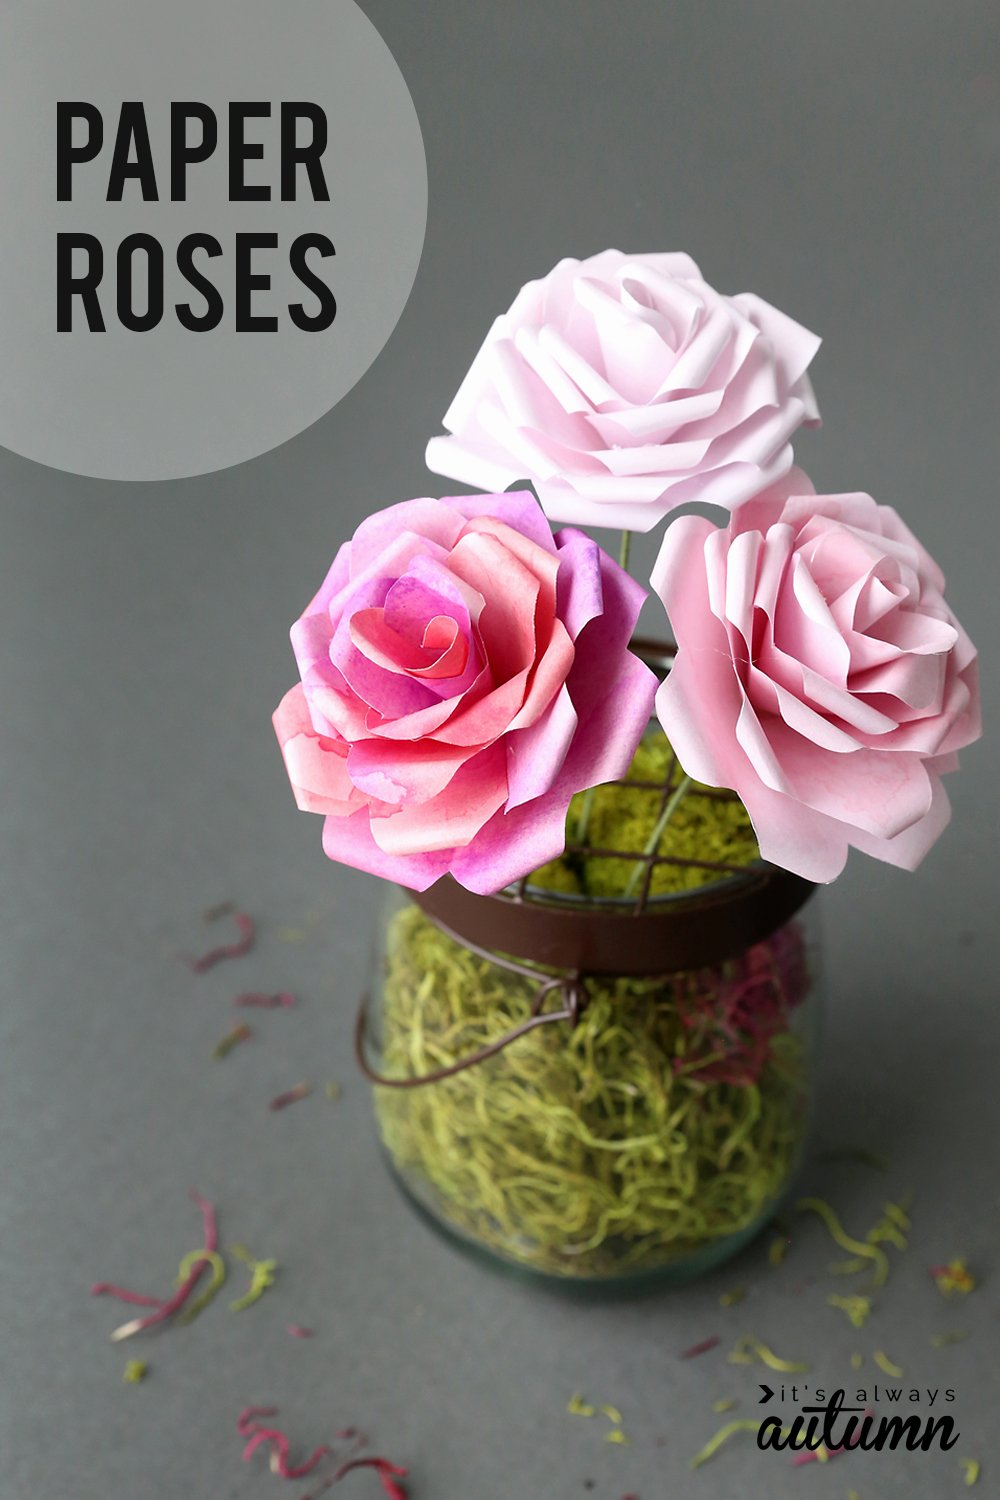 Templates for Paper Flowers Awesome Make Gorgeous Paper Roses with This Free Paper Rose